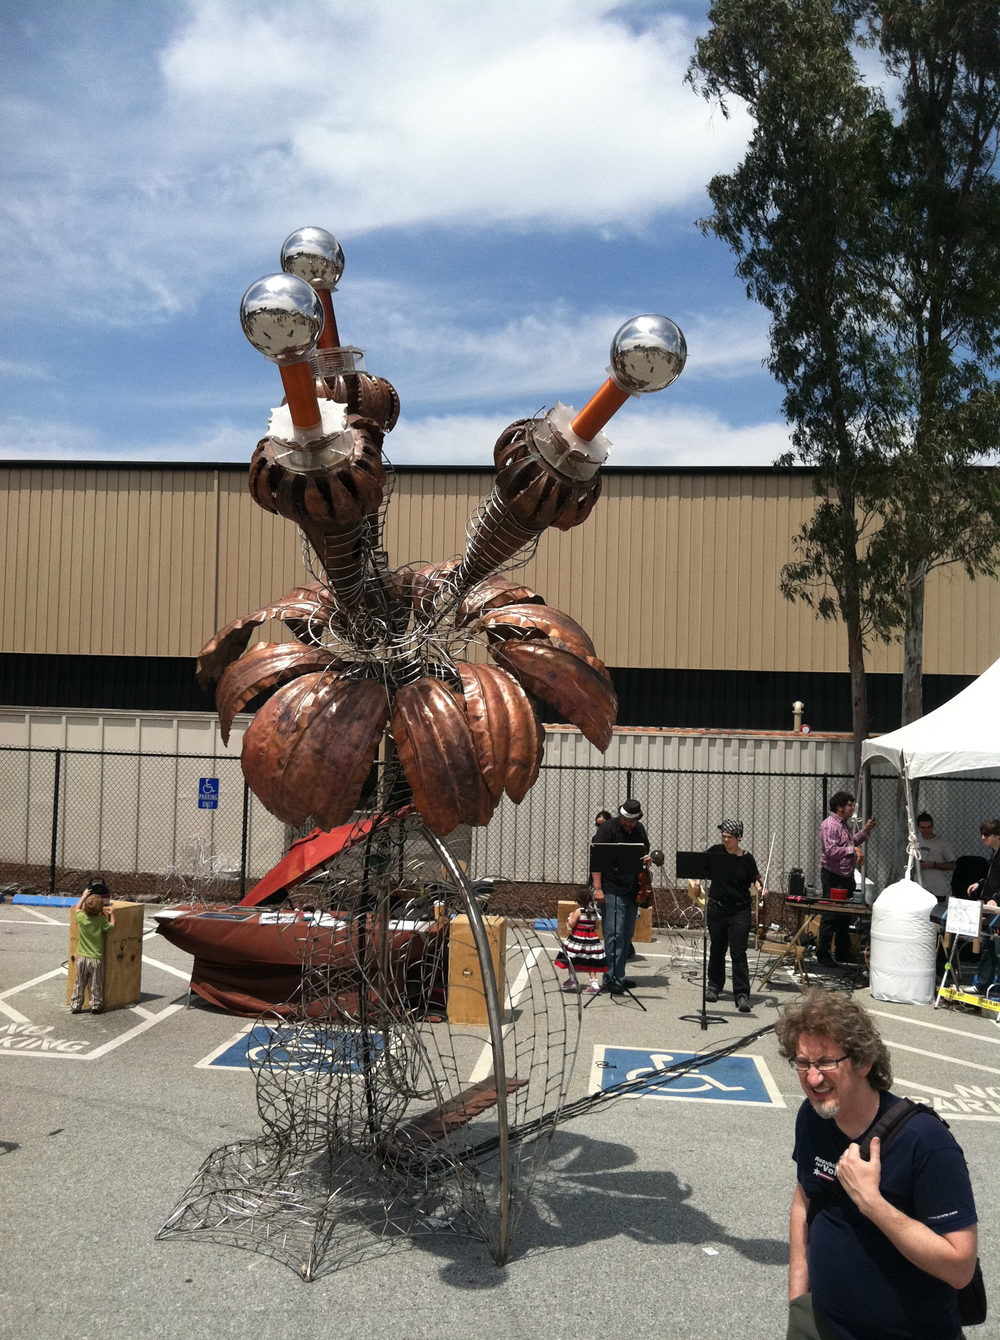 APERION with live violin playing the Tesla coils at Maker Faire.